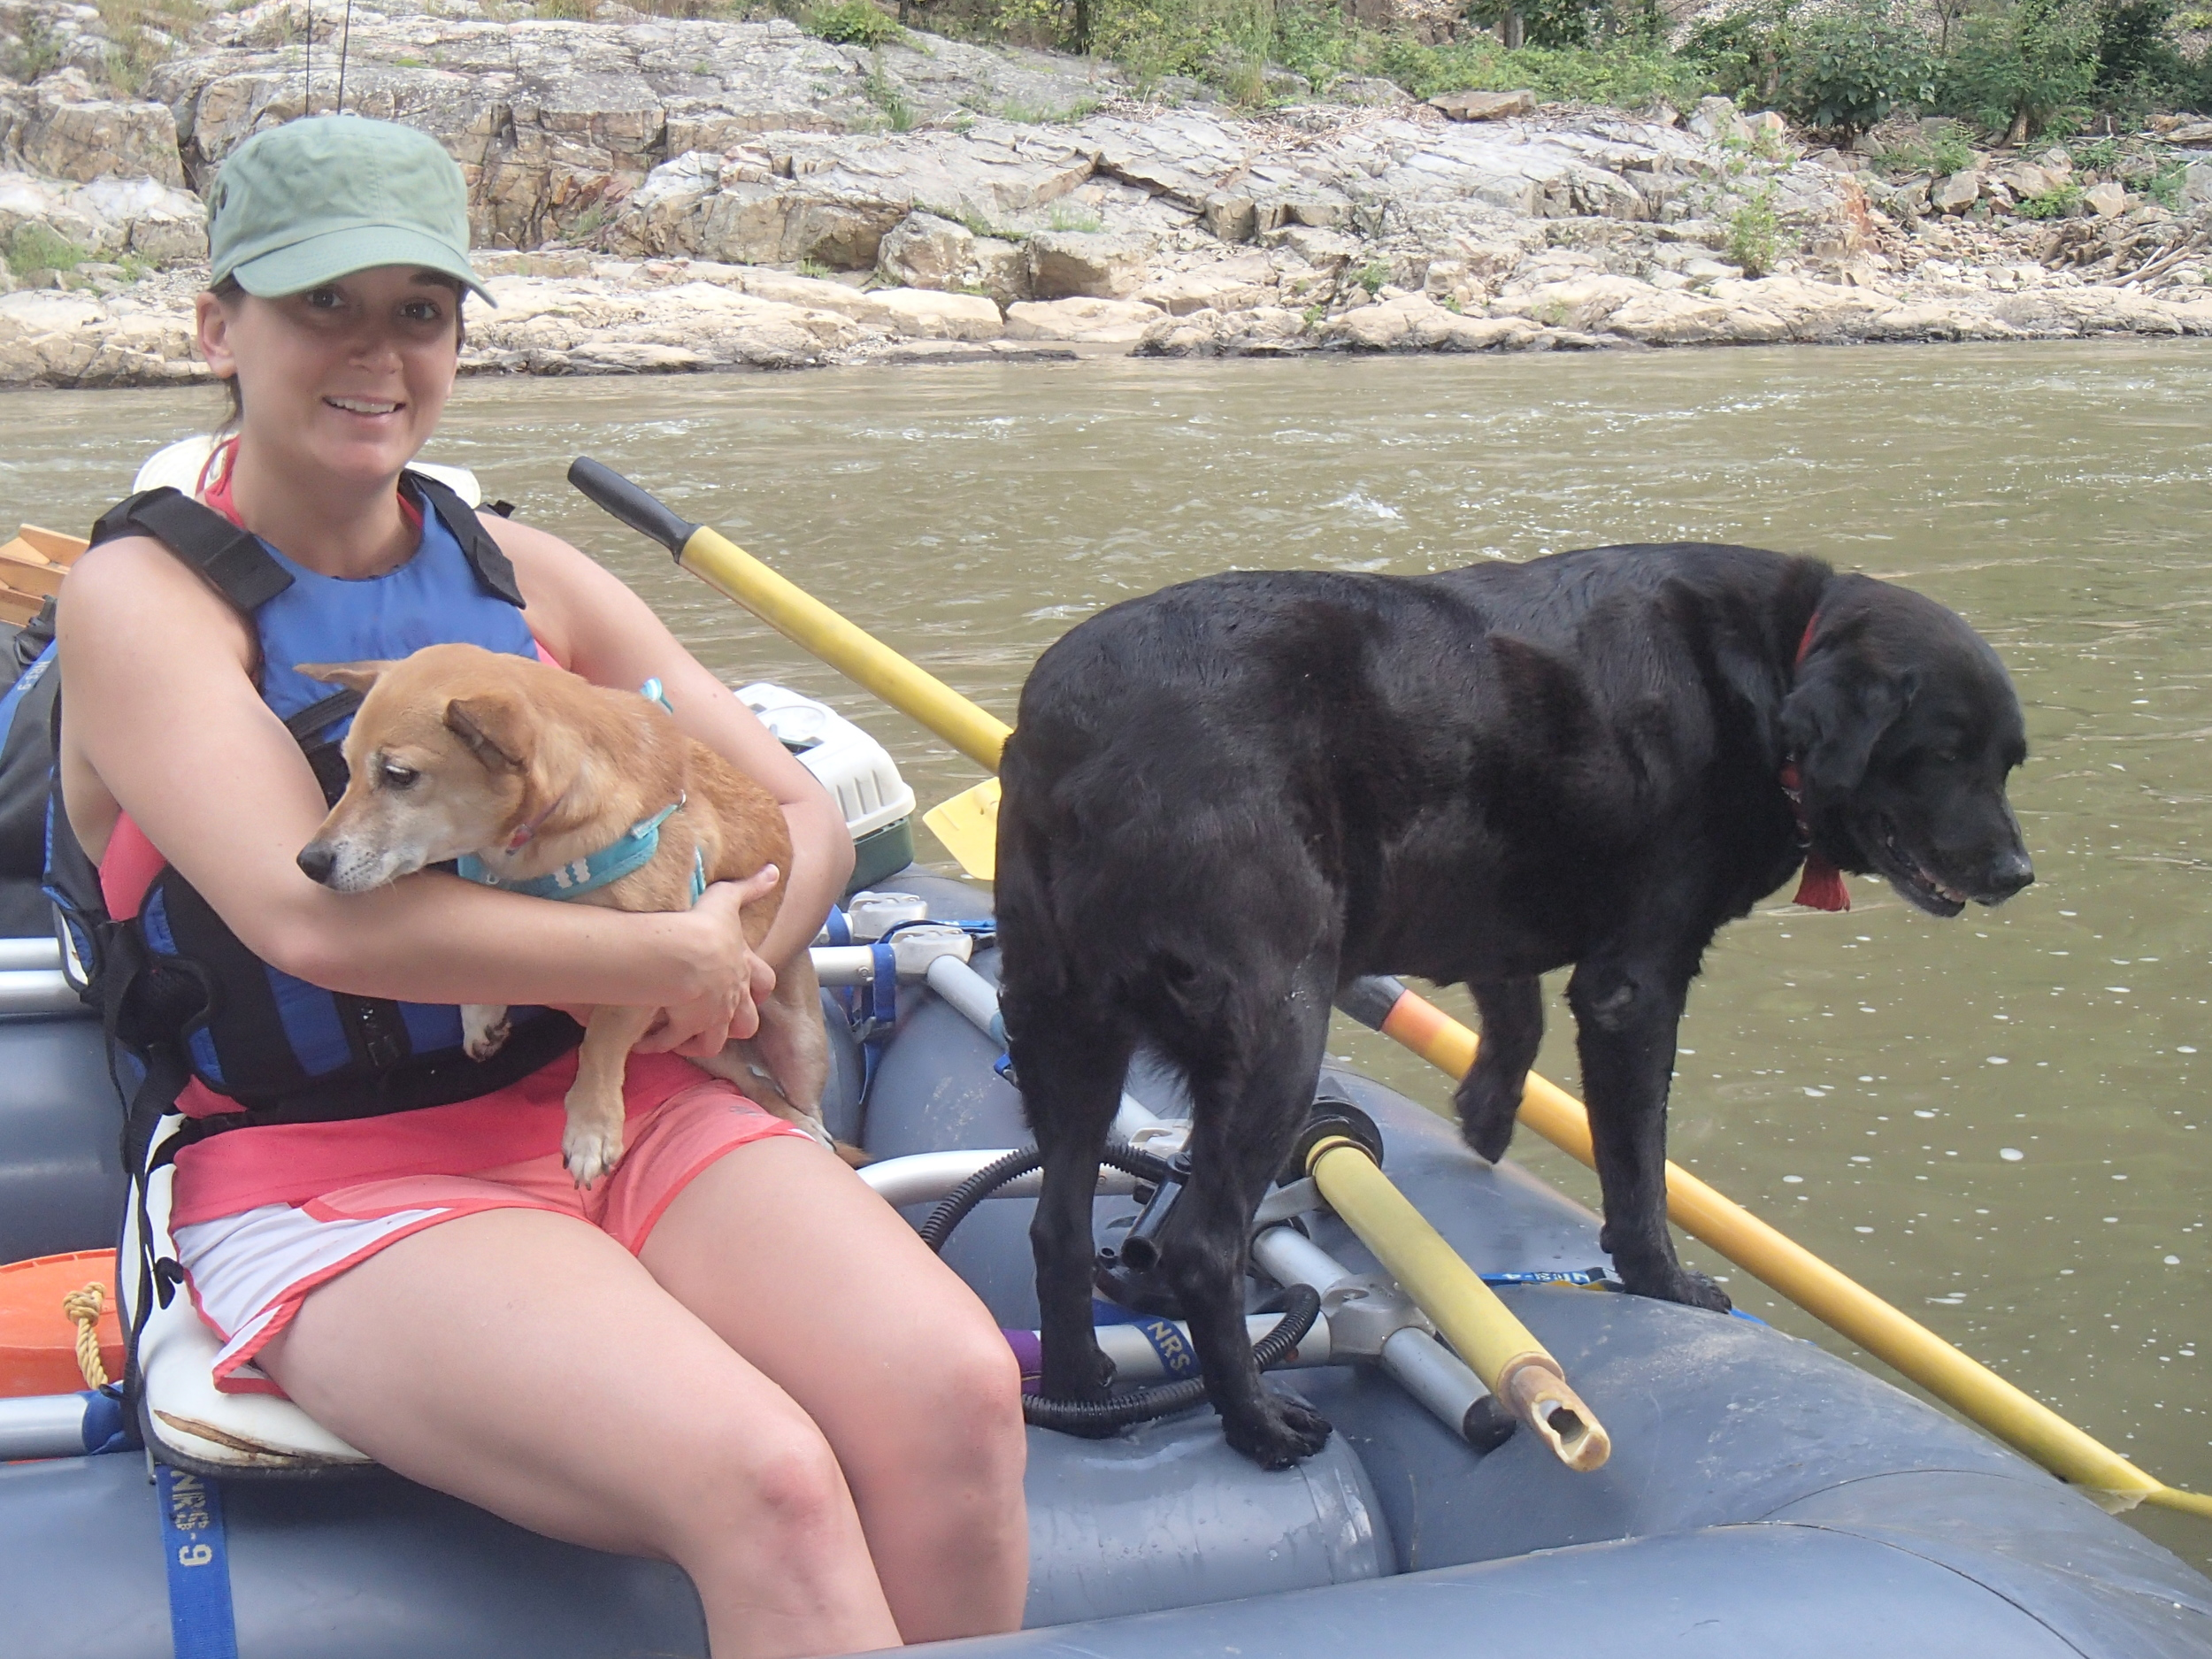 Smoky & Miss P join us rafting